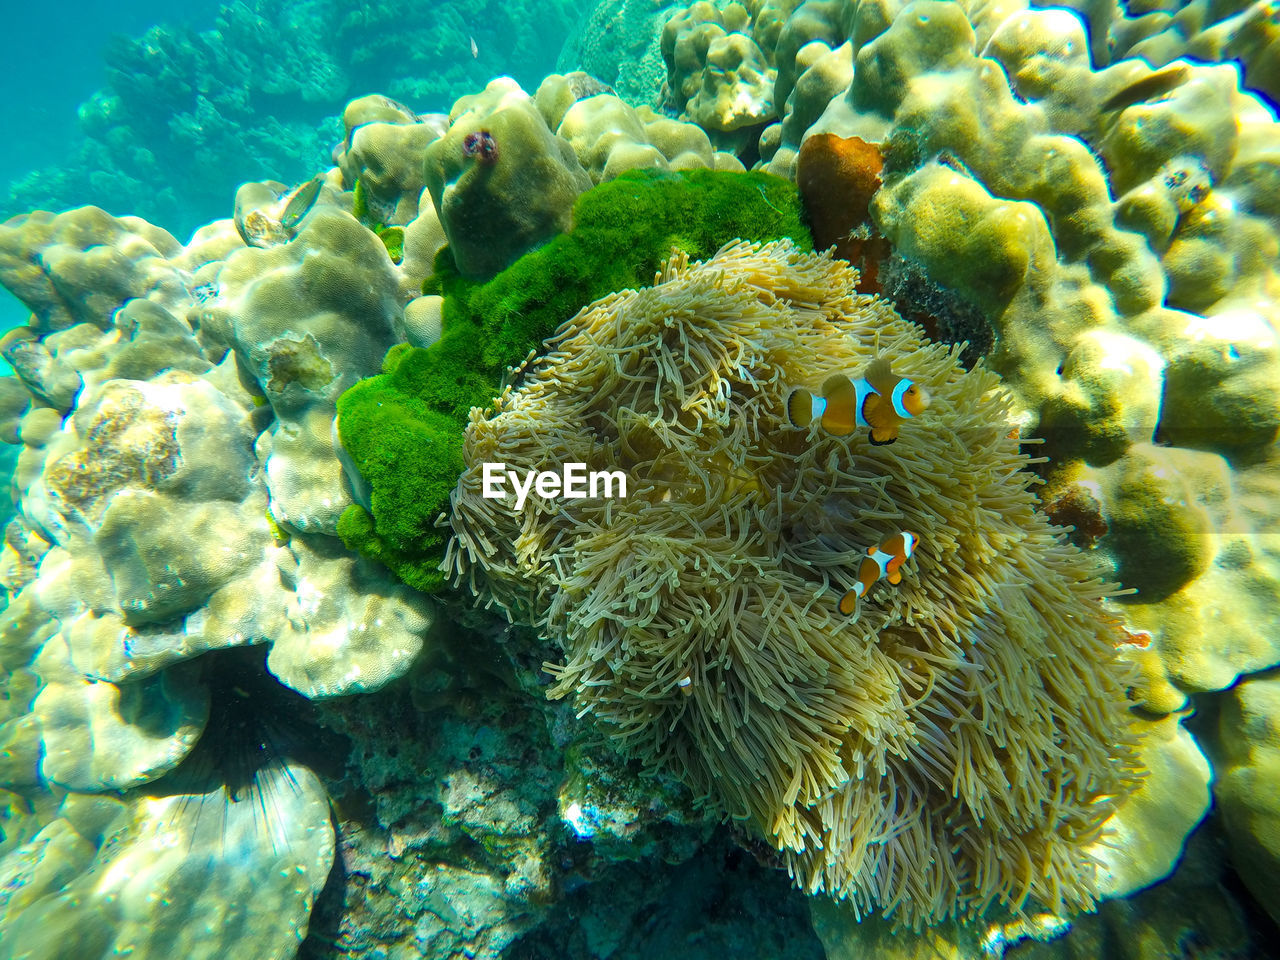 underwater, undersea, sea life, sea, coral, water, animals in the wild, animal themes, reef, nature, no people, beauty in nature, animal wildlife, swimming, clown fish, sea anemone, close-up, scuba diving, day